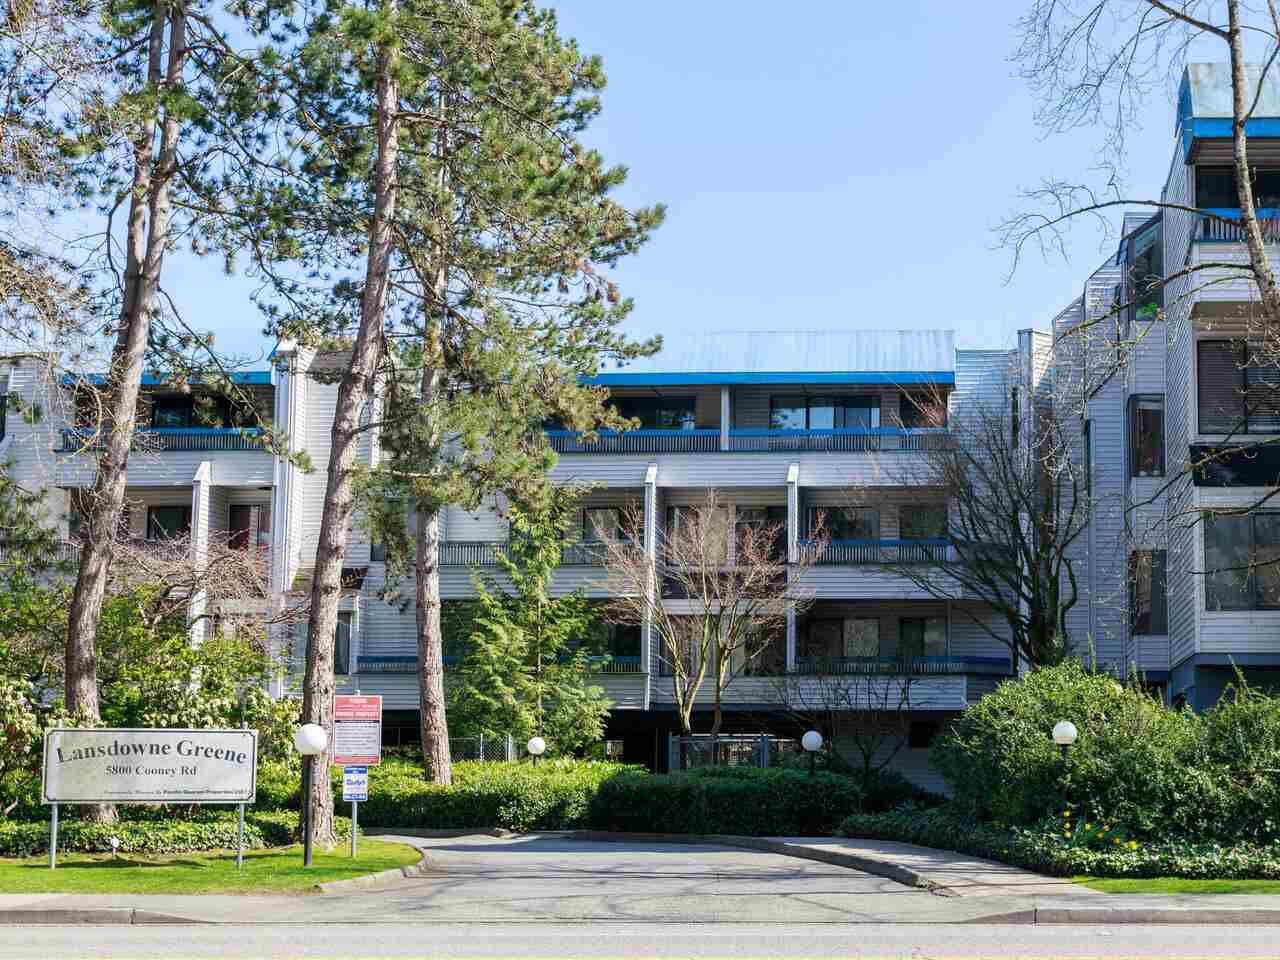 """Main Photo: 302 5800 COONEY Road in Richmond: Brighouse Condo for sale in """"Lansdowne Greene"""" : MLS®# R2560090"""